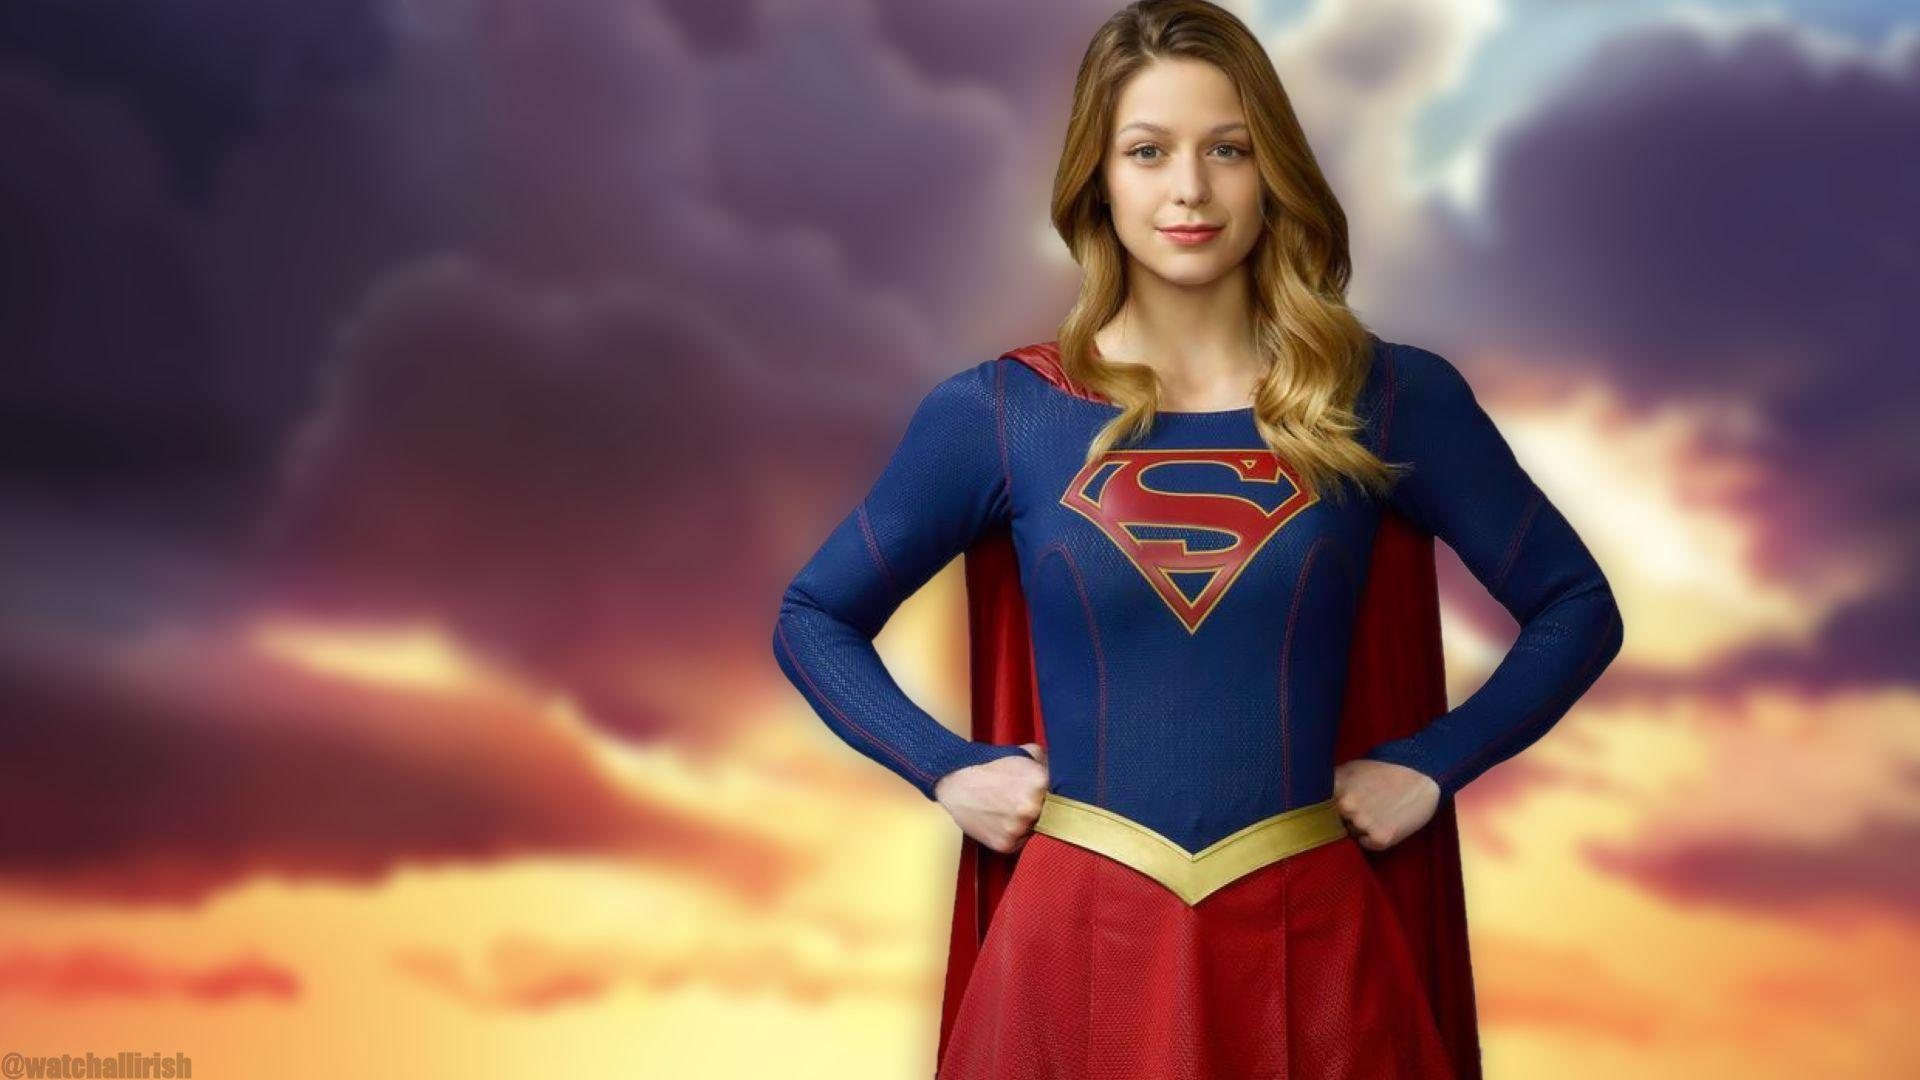 Supergirl Wallpapers - Wallpaper Cave